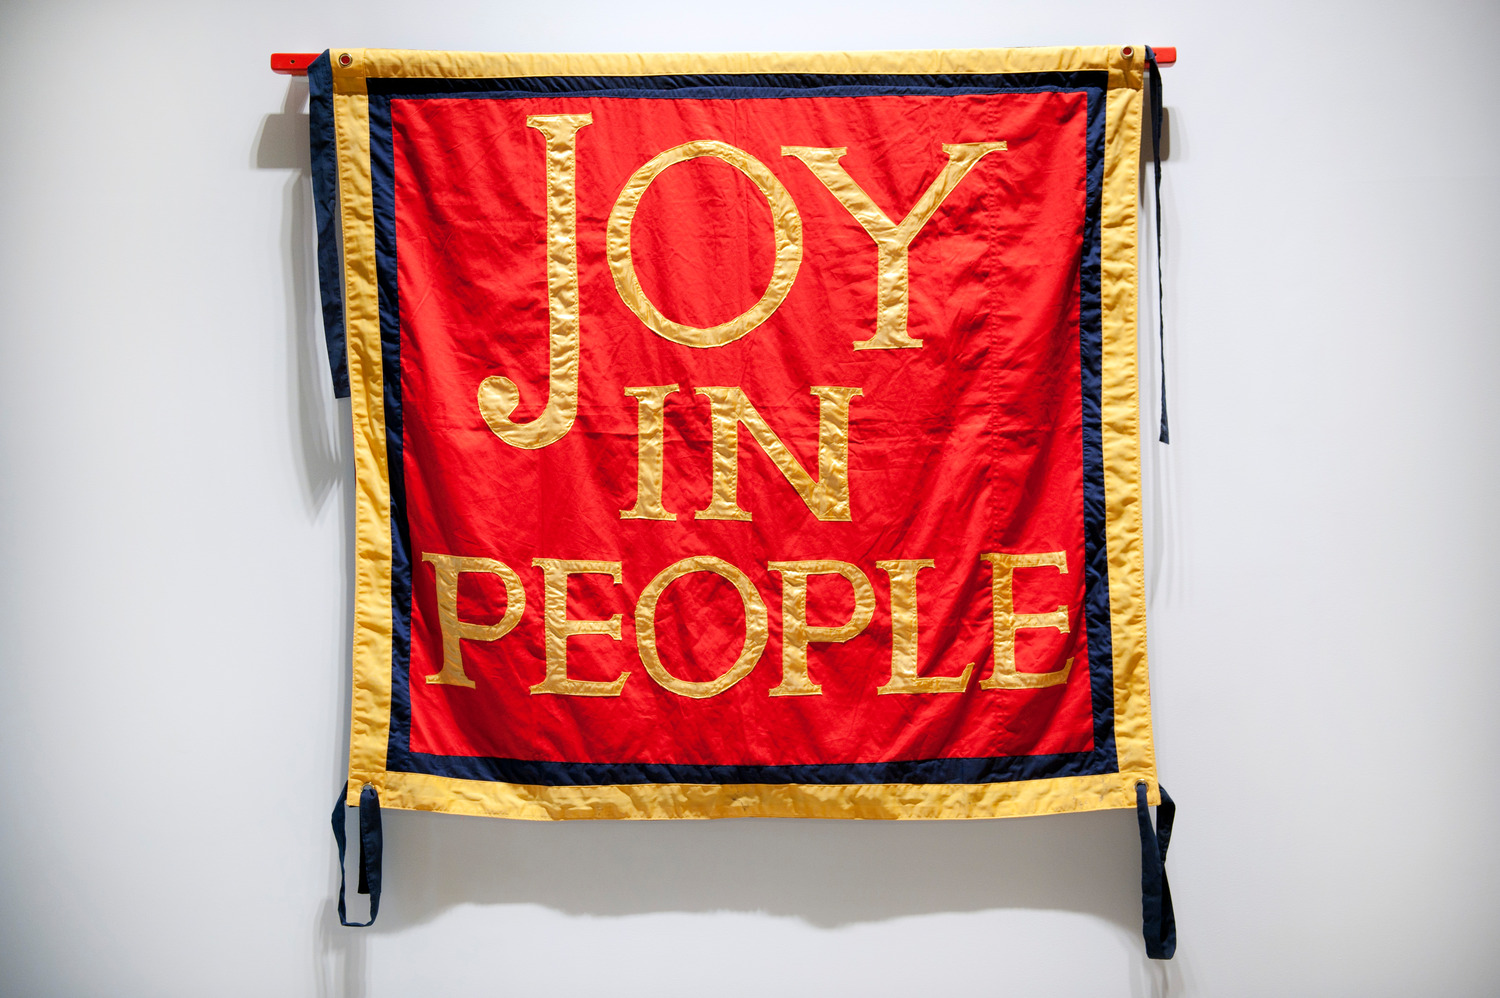 Joy In People, 2011, Cotton drill, banner made by Ed Hall, 200 x 201 x 3 cm